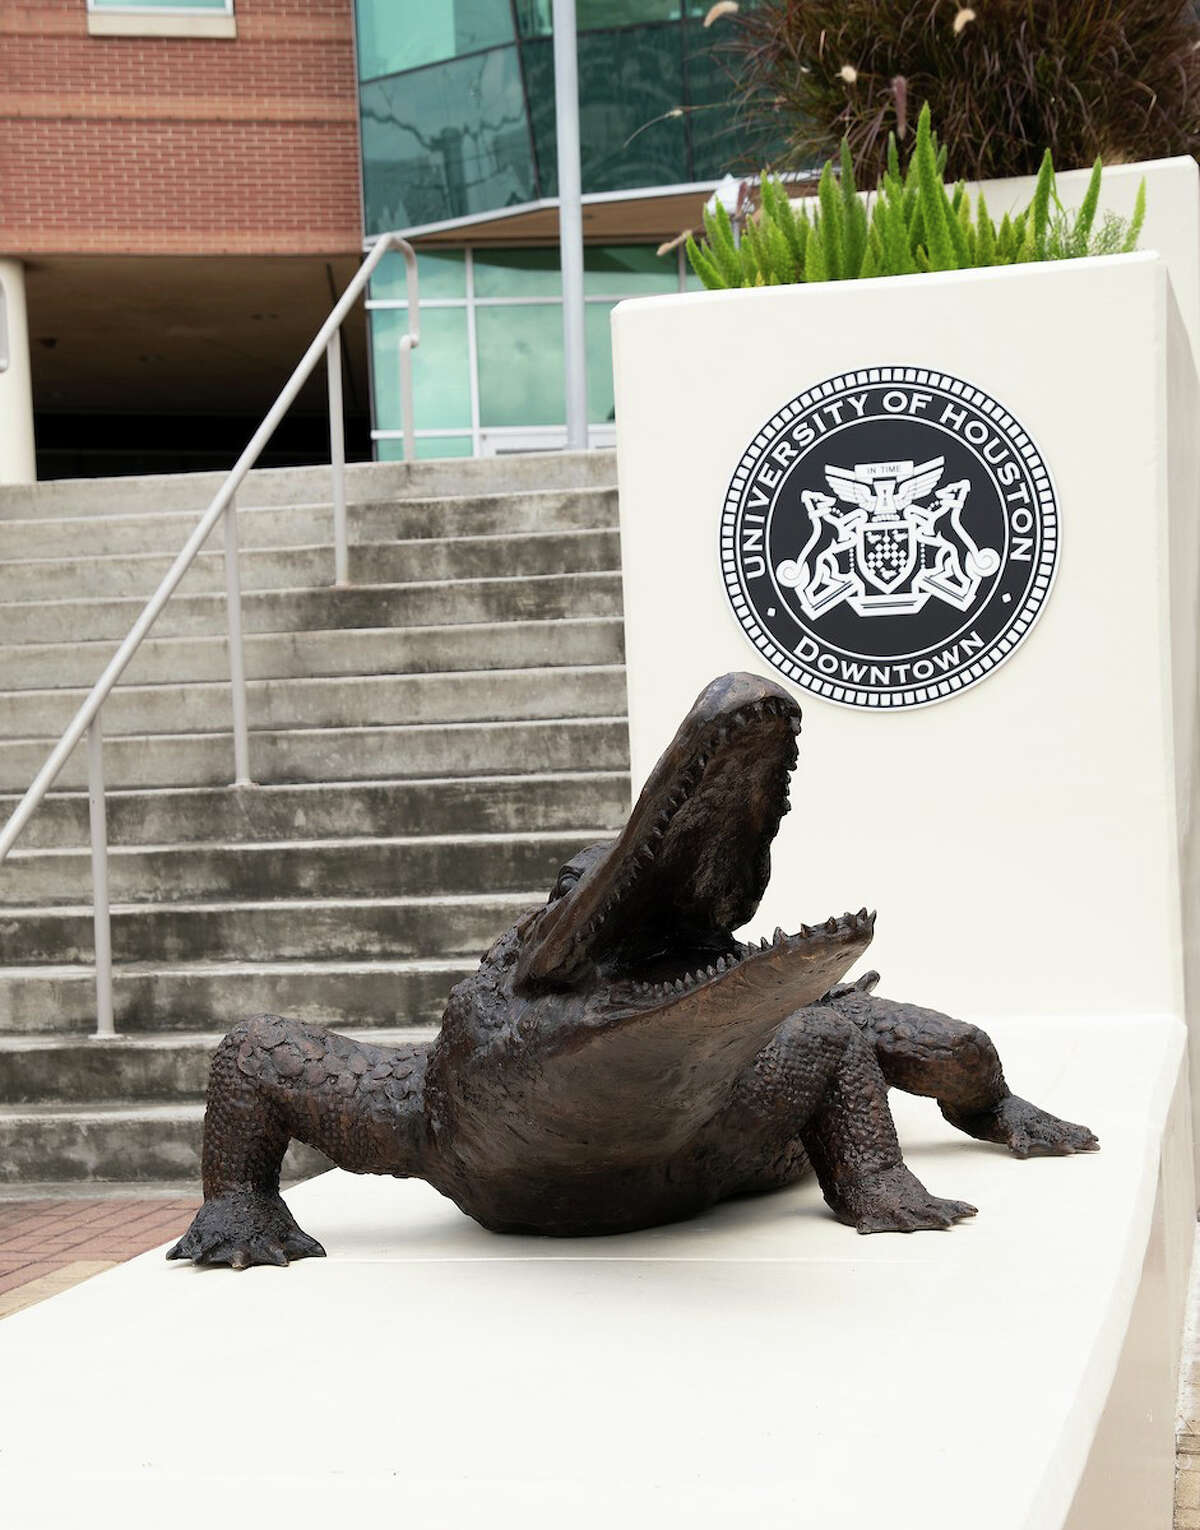 The next time you walk up the front steps of the UH Downtown's Shea Street Building, home of the Marilyn Davies College of Business, keep an eye out for the gator there to greet you.